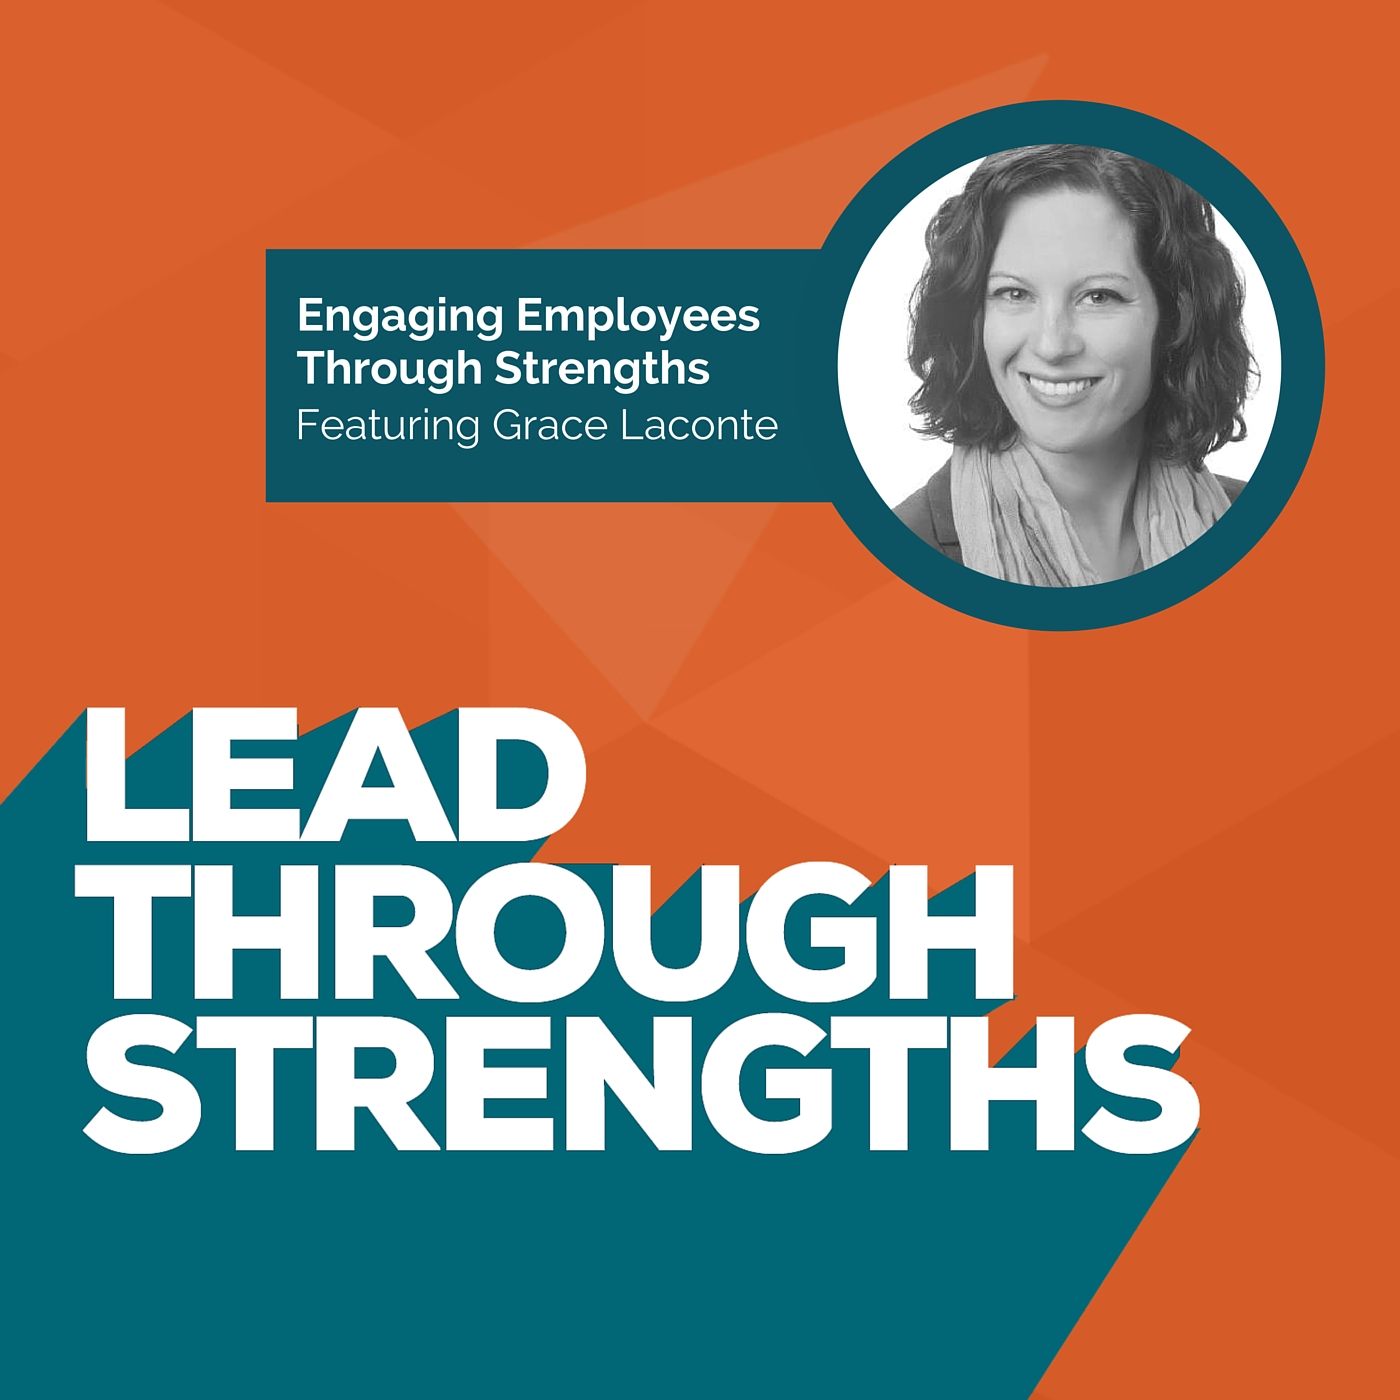 Engage Employees Through Strengths - With Grace Laconte